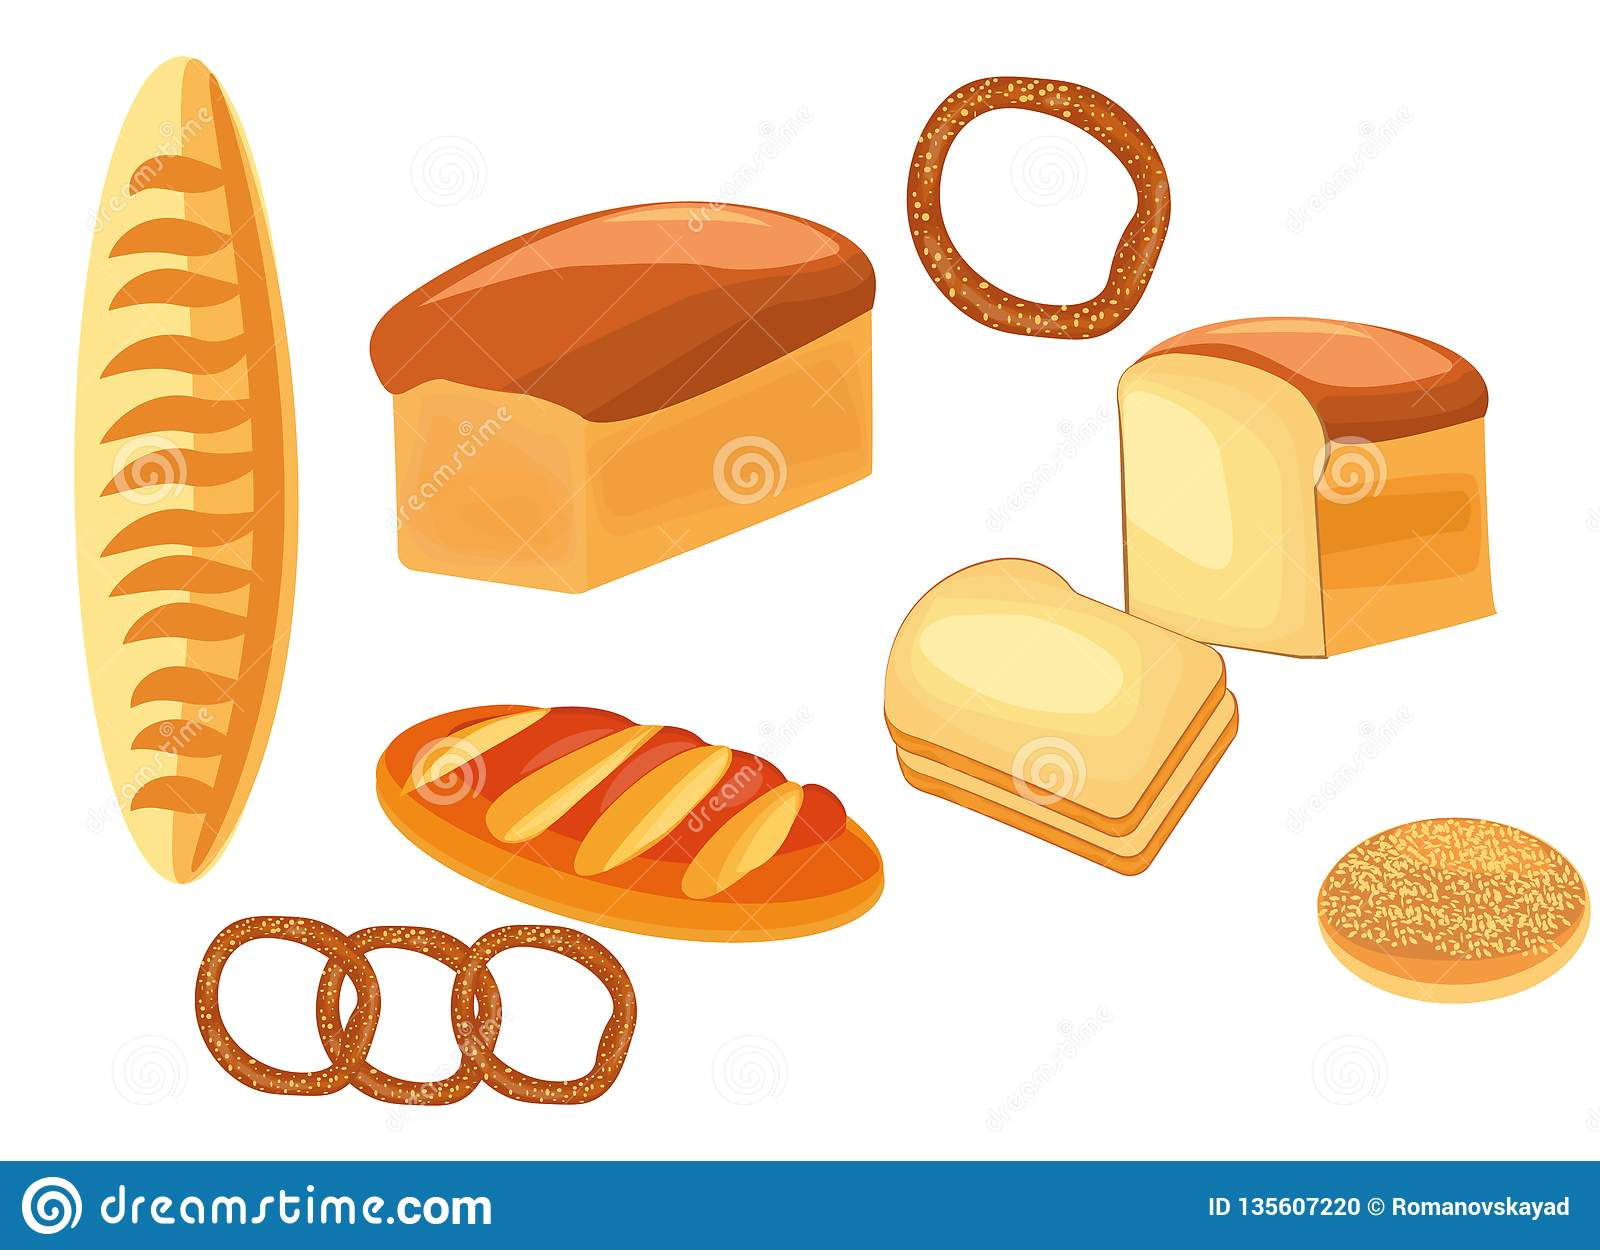 Bread Different Types Of Bread Bread Loaf Bagel Bun Baguette Stock Vector Illustration Of Delicious Isolated 135607220